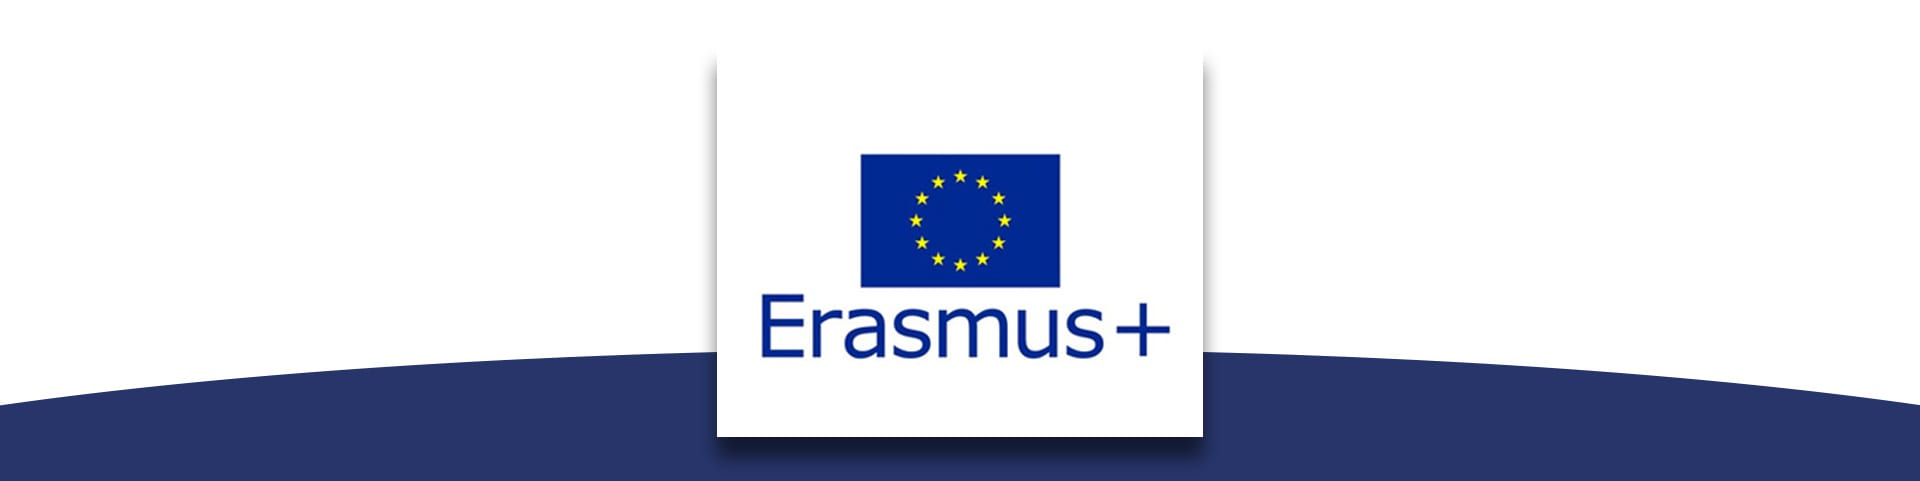 Erasmus+no alt text set su stradedeuropa.eu